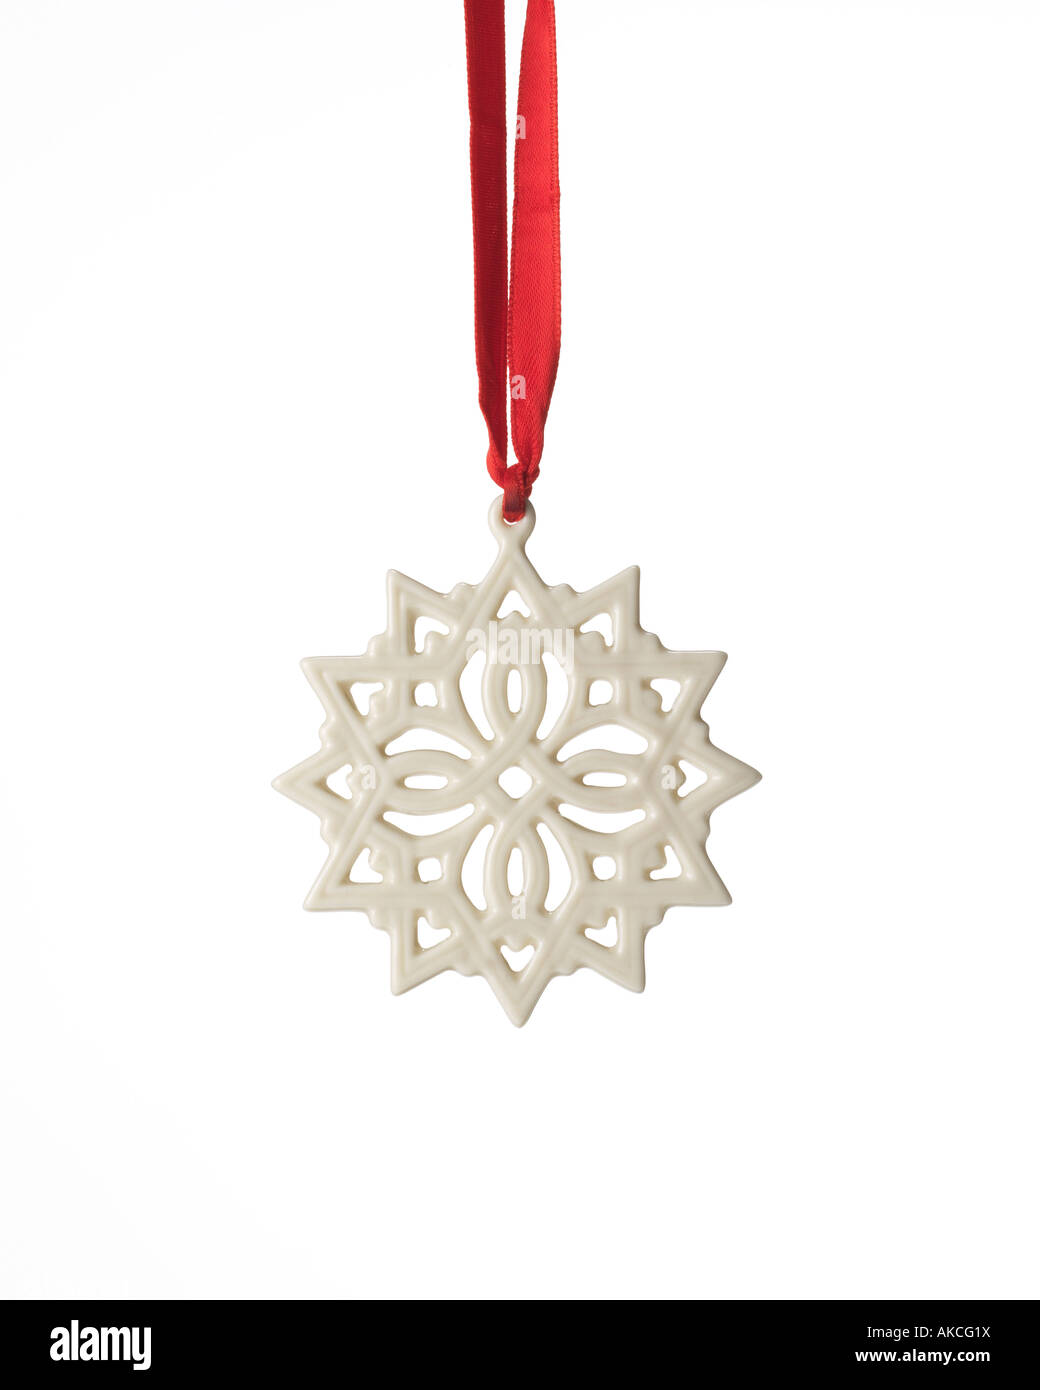 Christmas ornament white stylized porcelain snowflake hanging from red satin ribbon - Stock Image